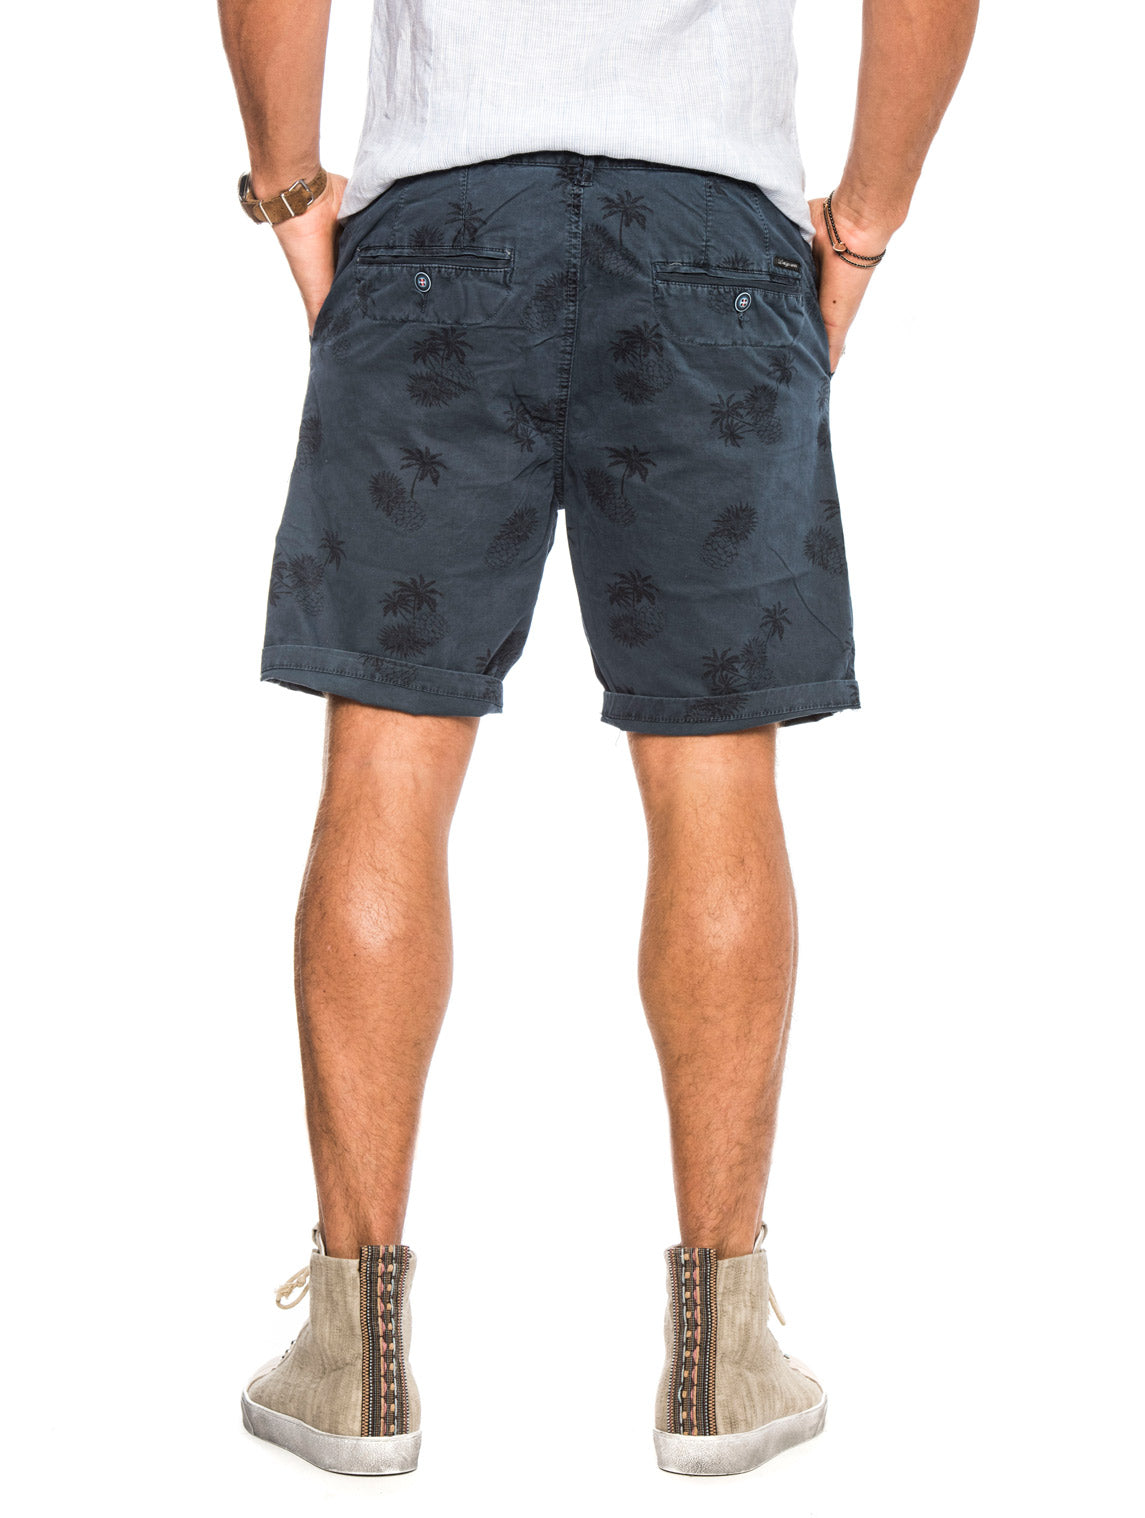 RAINBOW SHORTS WITH PRINTED PALMS IN BLUE NAVY